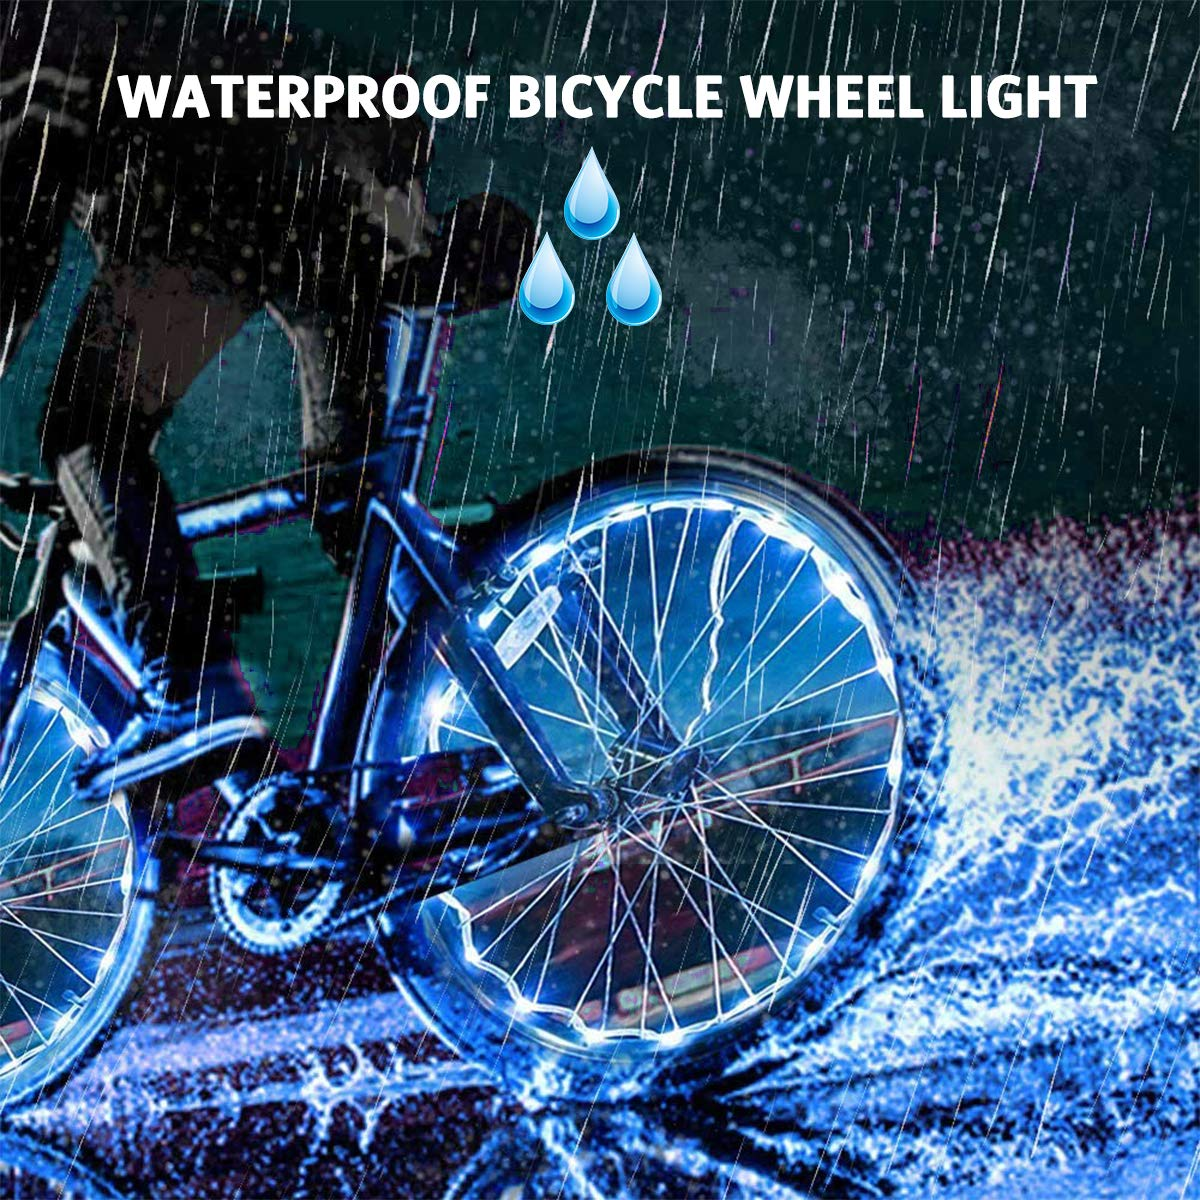 AOYOO Bicycle Wheel Light Night Light (1 Tire Pack) Waterproof 7 Color Outdoor Lighting Bicycle Tire Accessories You Can Choose Your Favorite Color 18 Flash Pattern Personality Selection, Safety Spoke by AOYOO (Image #6)